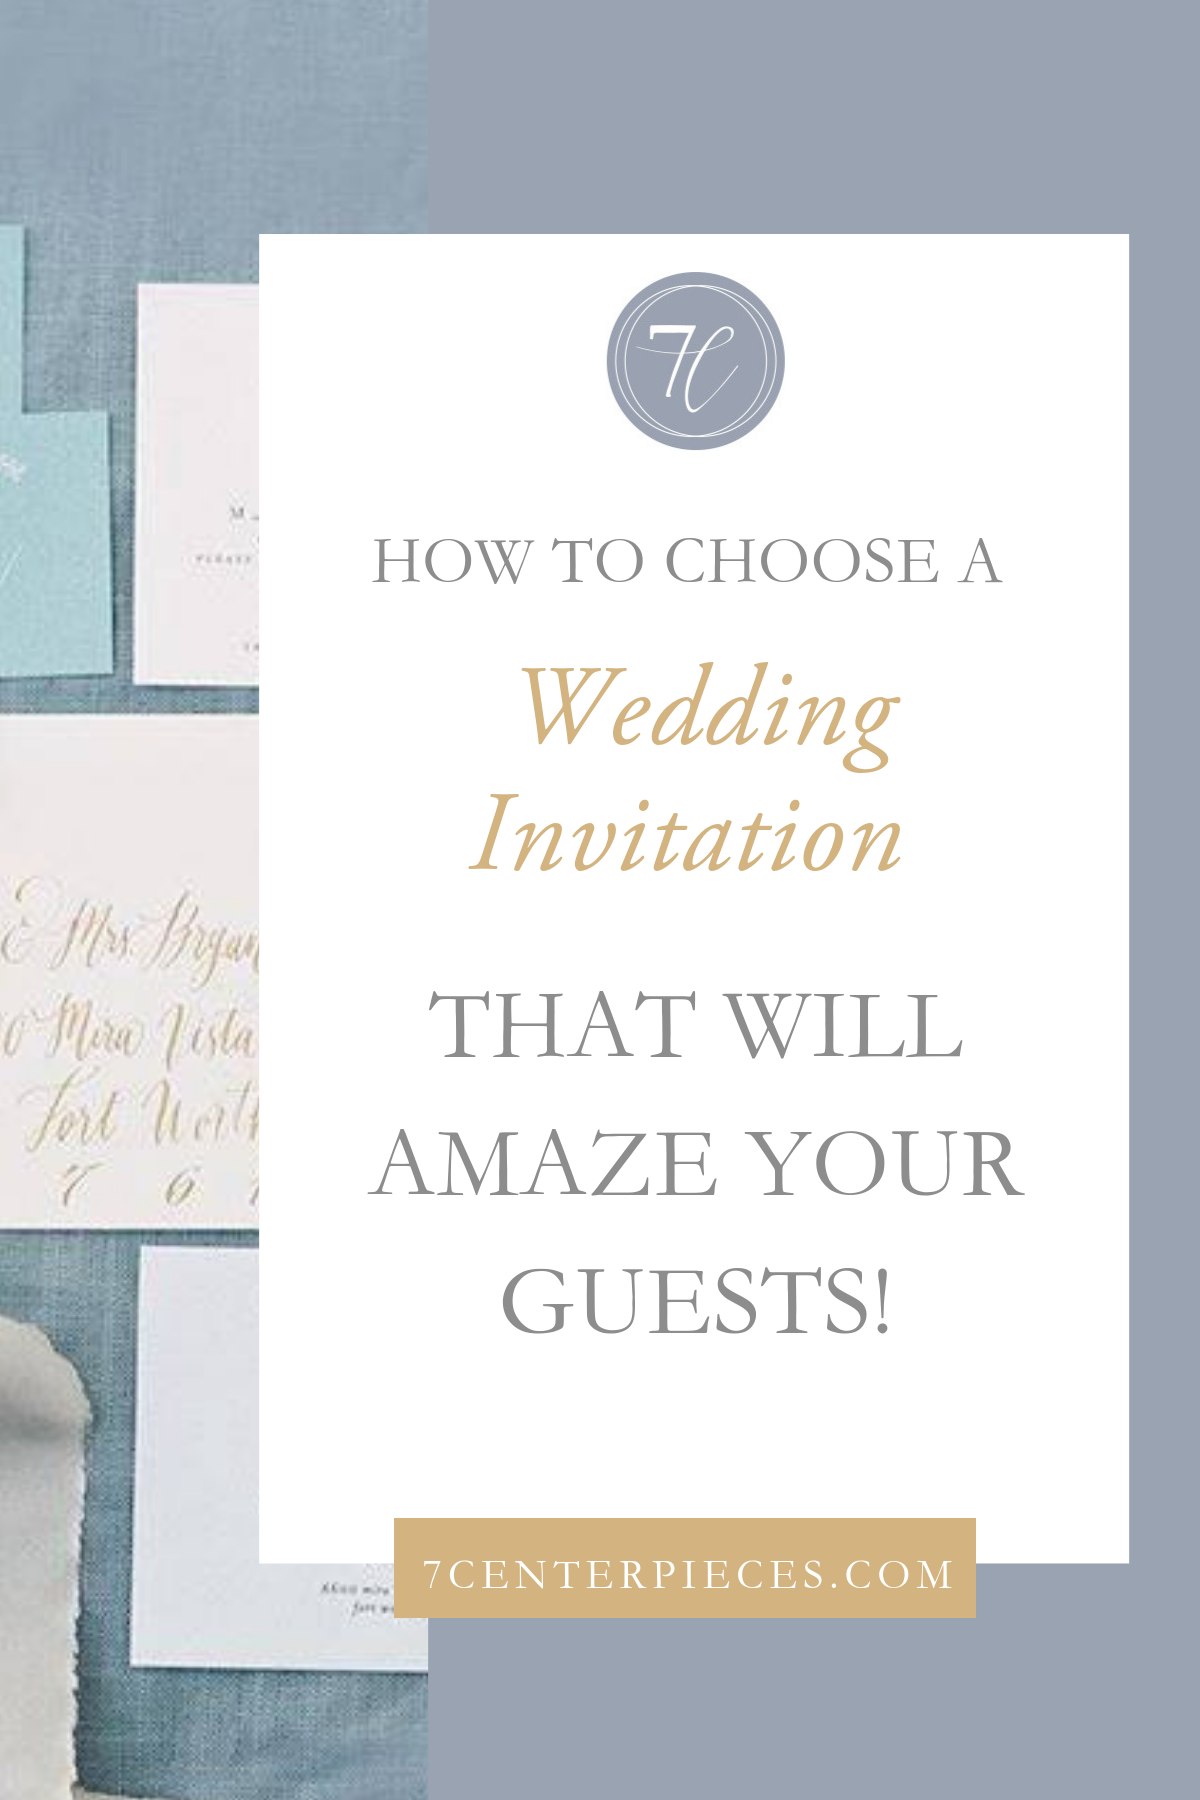 How to Choose a Wedding Invitation that Will Amaze Your Guests!